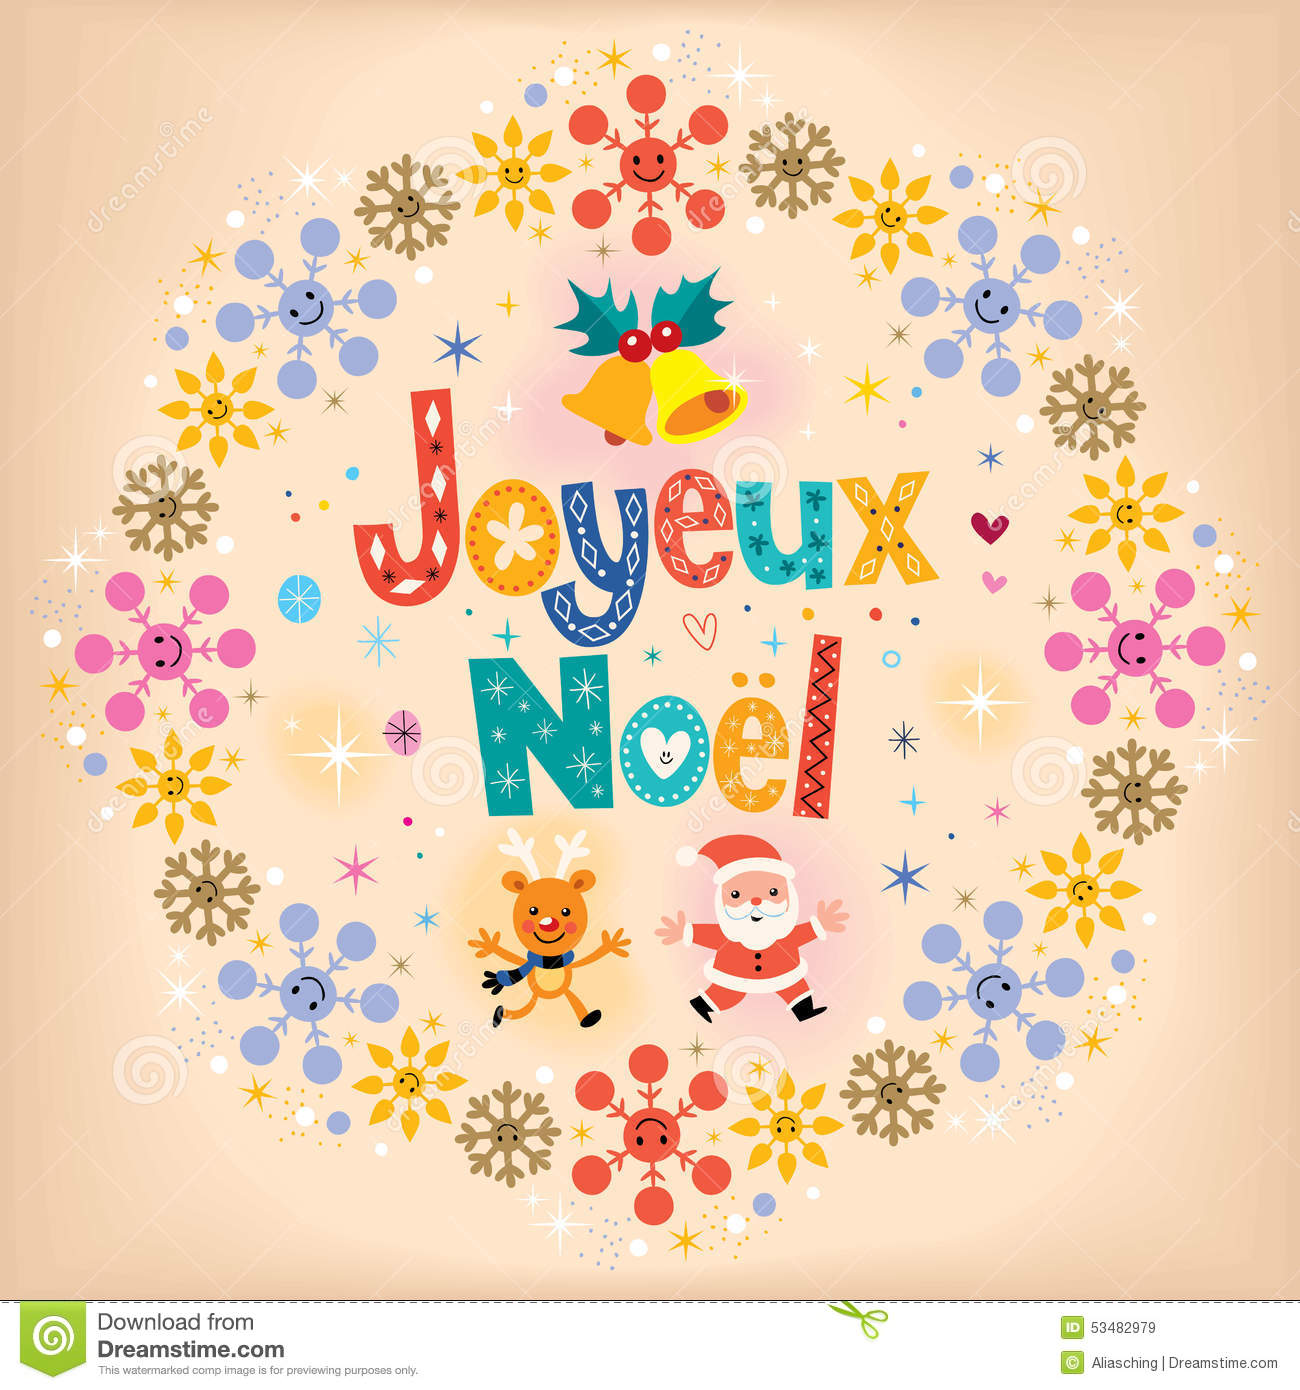 joyeux noel merry christmas in french card vector illustration - Merry Christmas French